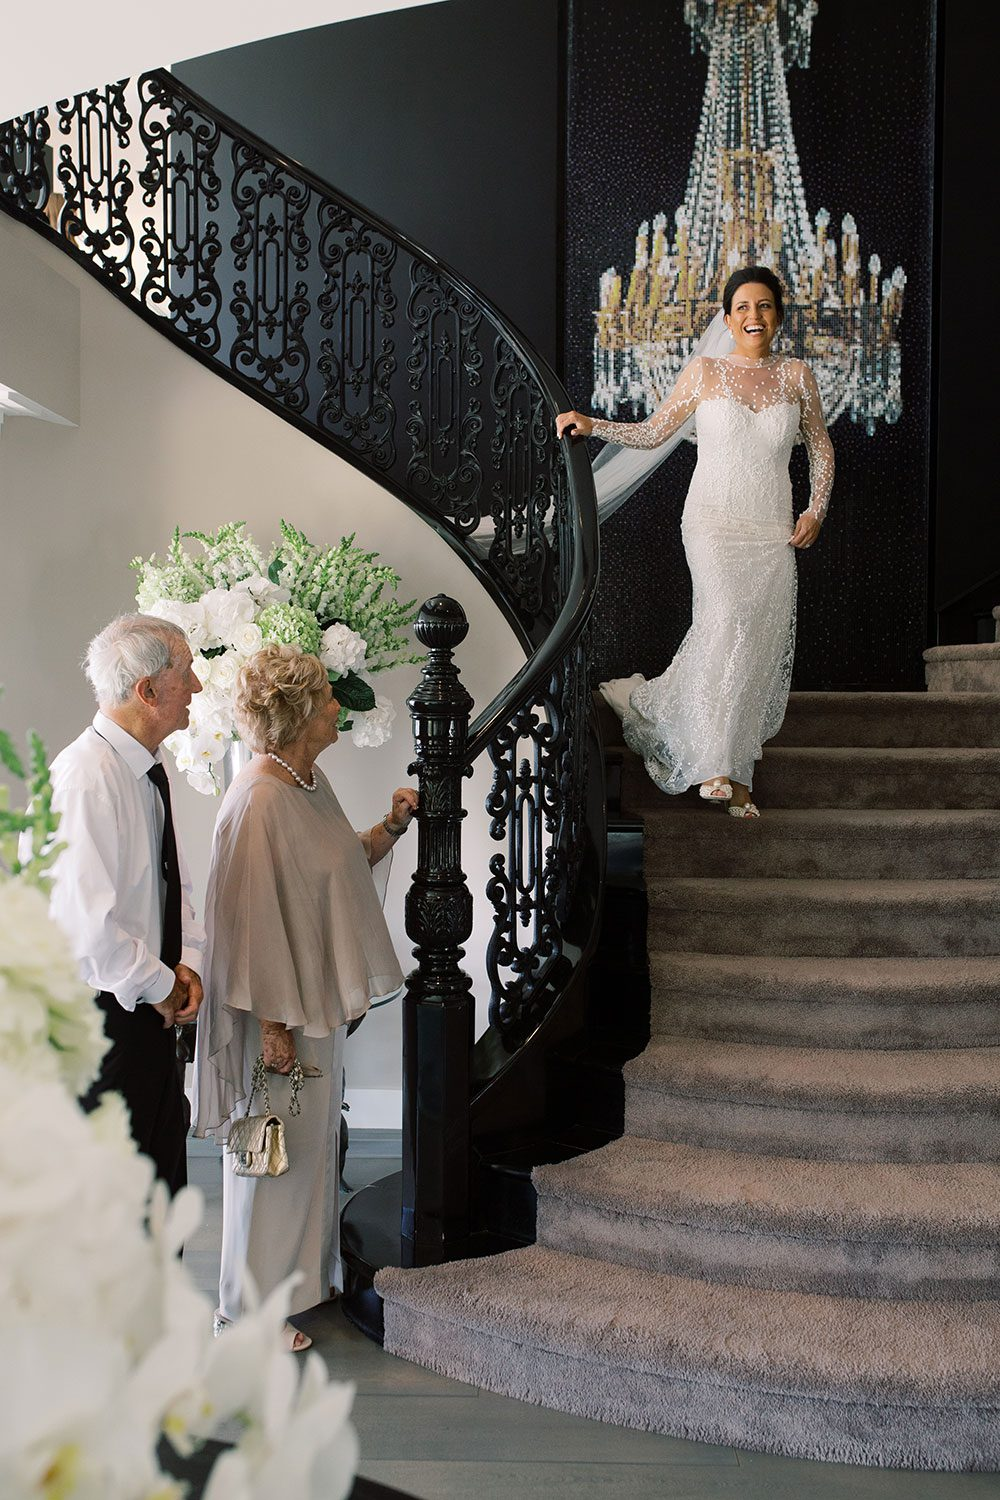 Bride wearing bespoke gown by Auckland wedding dress designer Vinka Design, with a high neckline and delicate spotted embroidery - bride on stairs